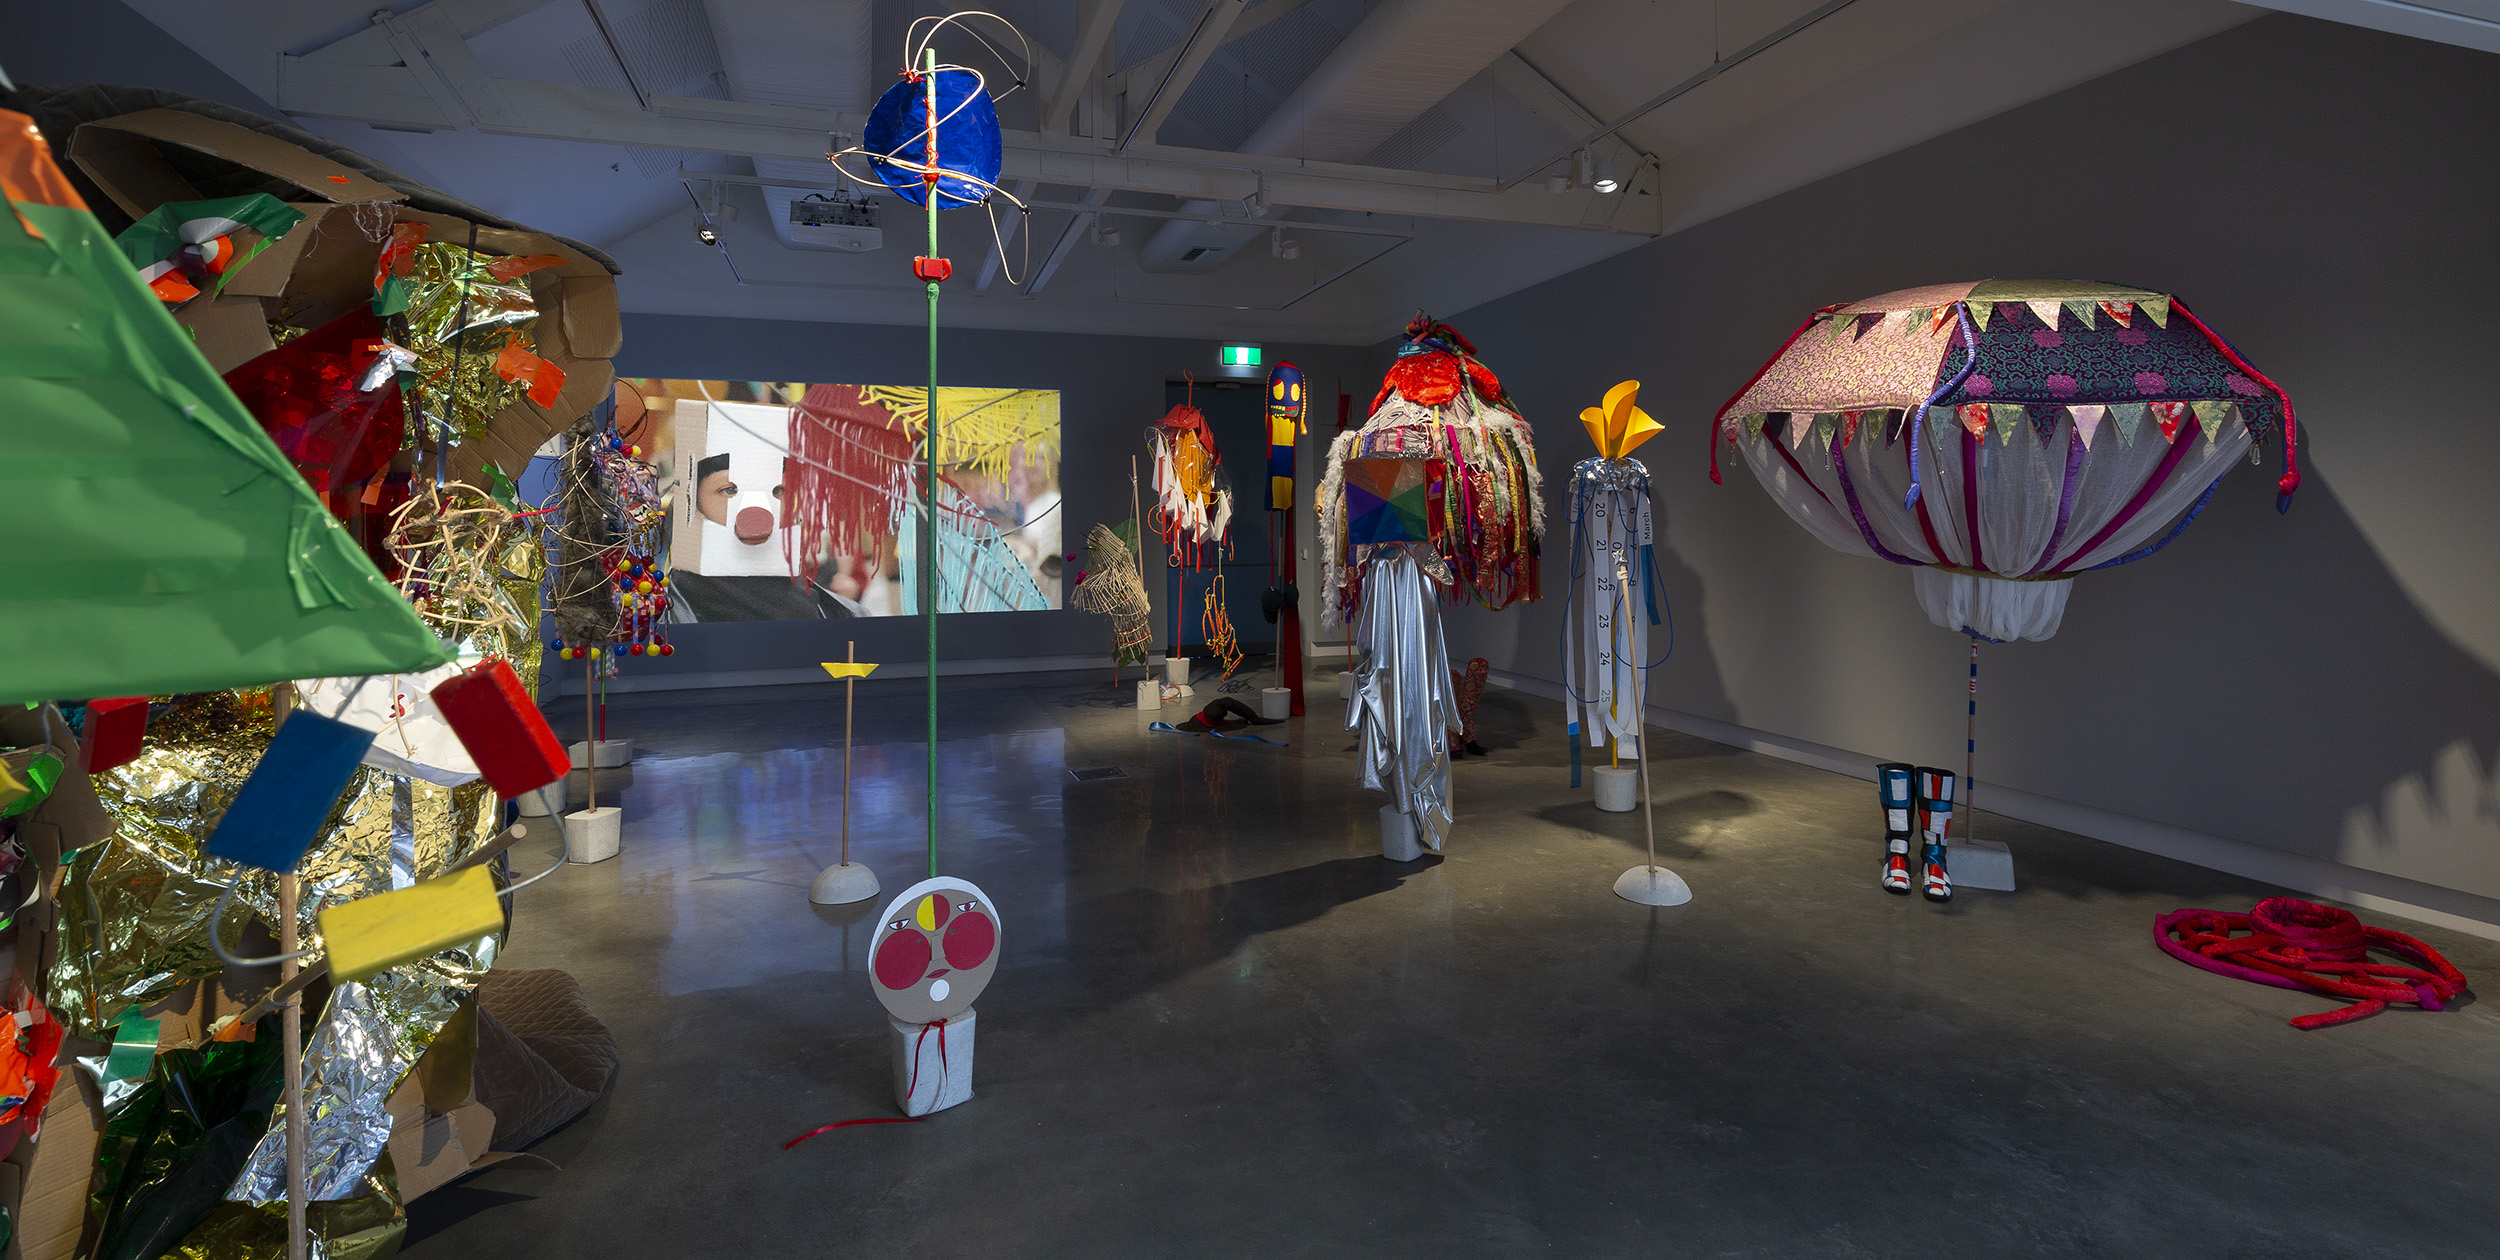 Mikala Dwyer and Justene Williams, Mondspiel (Moon Play), 2019, works by students from VCA, QCA and RMIT, Bauhaus Now!, curated by Ann Stephen, Buxton Contemporary, Melbourne